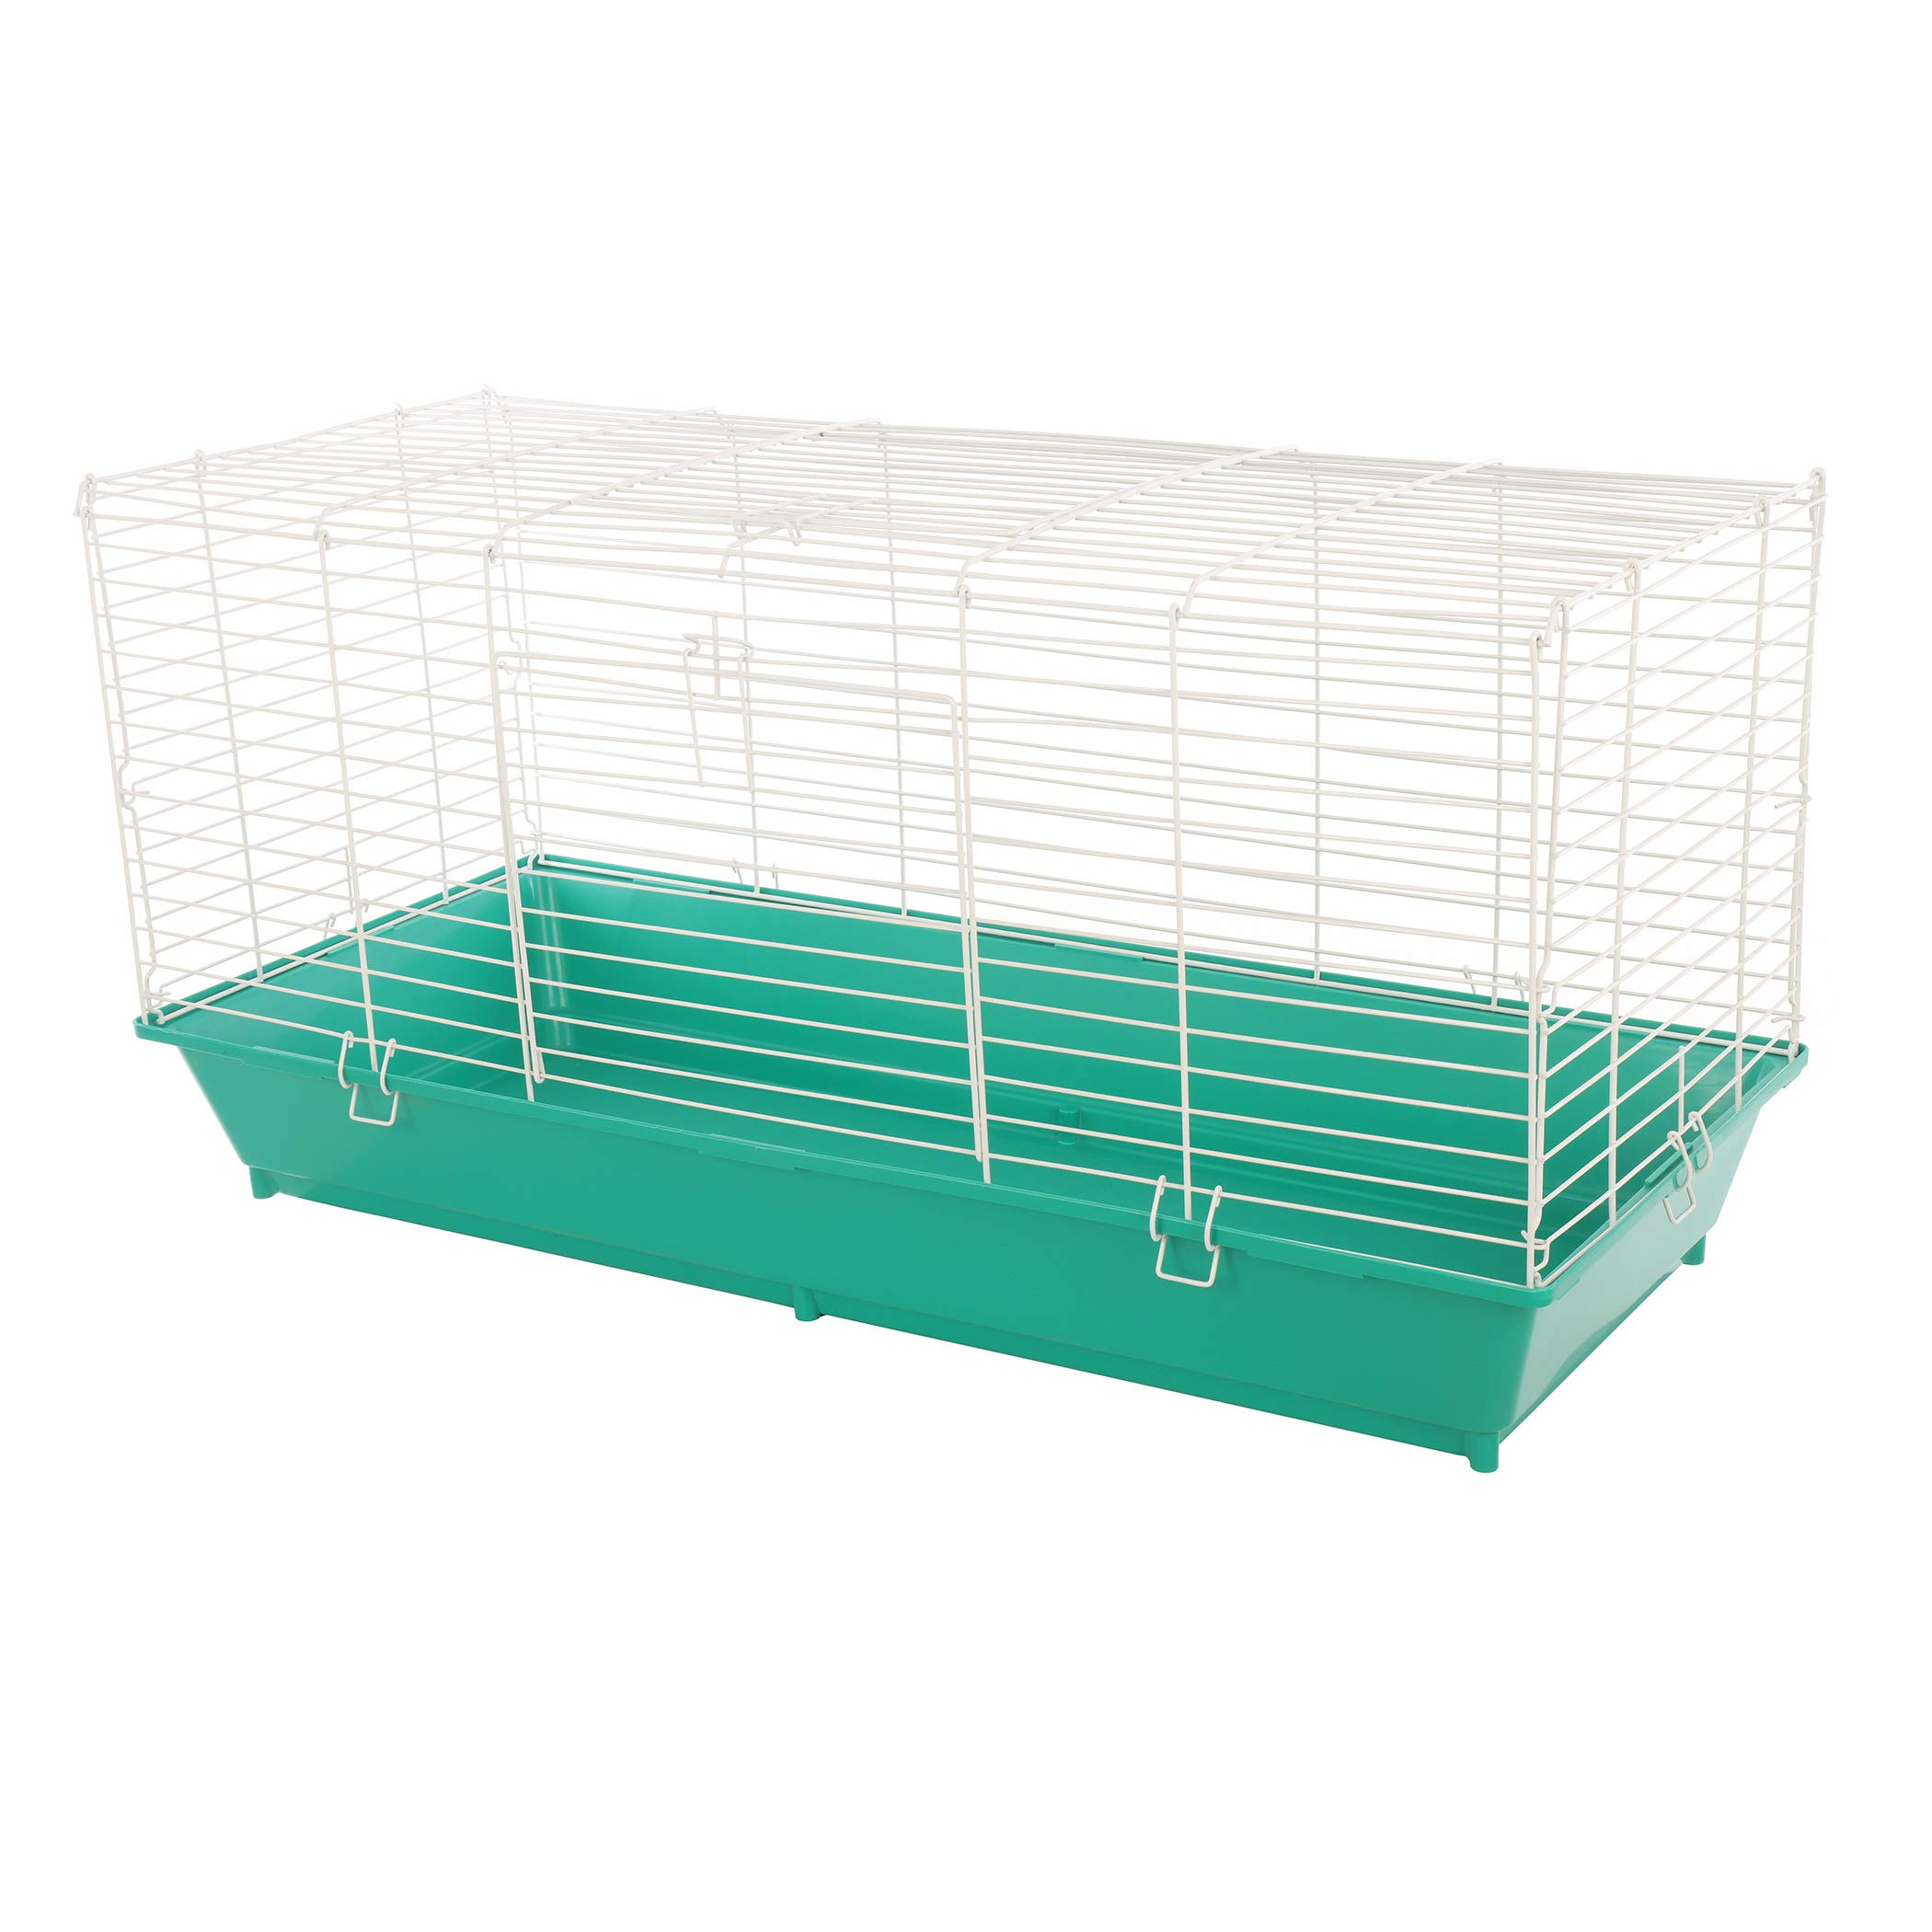 Ware Manufacturing Home Sweet Home Pet Cage for Small Animals - 40 Inches - Colors May Vary by Ware Manufacturing